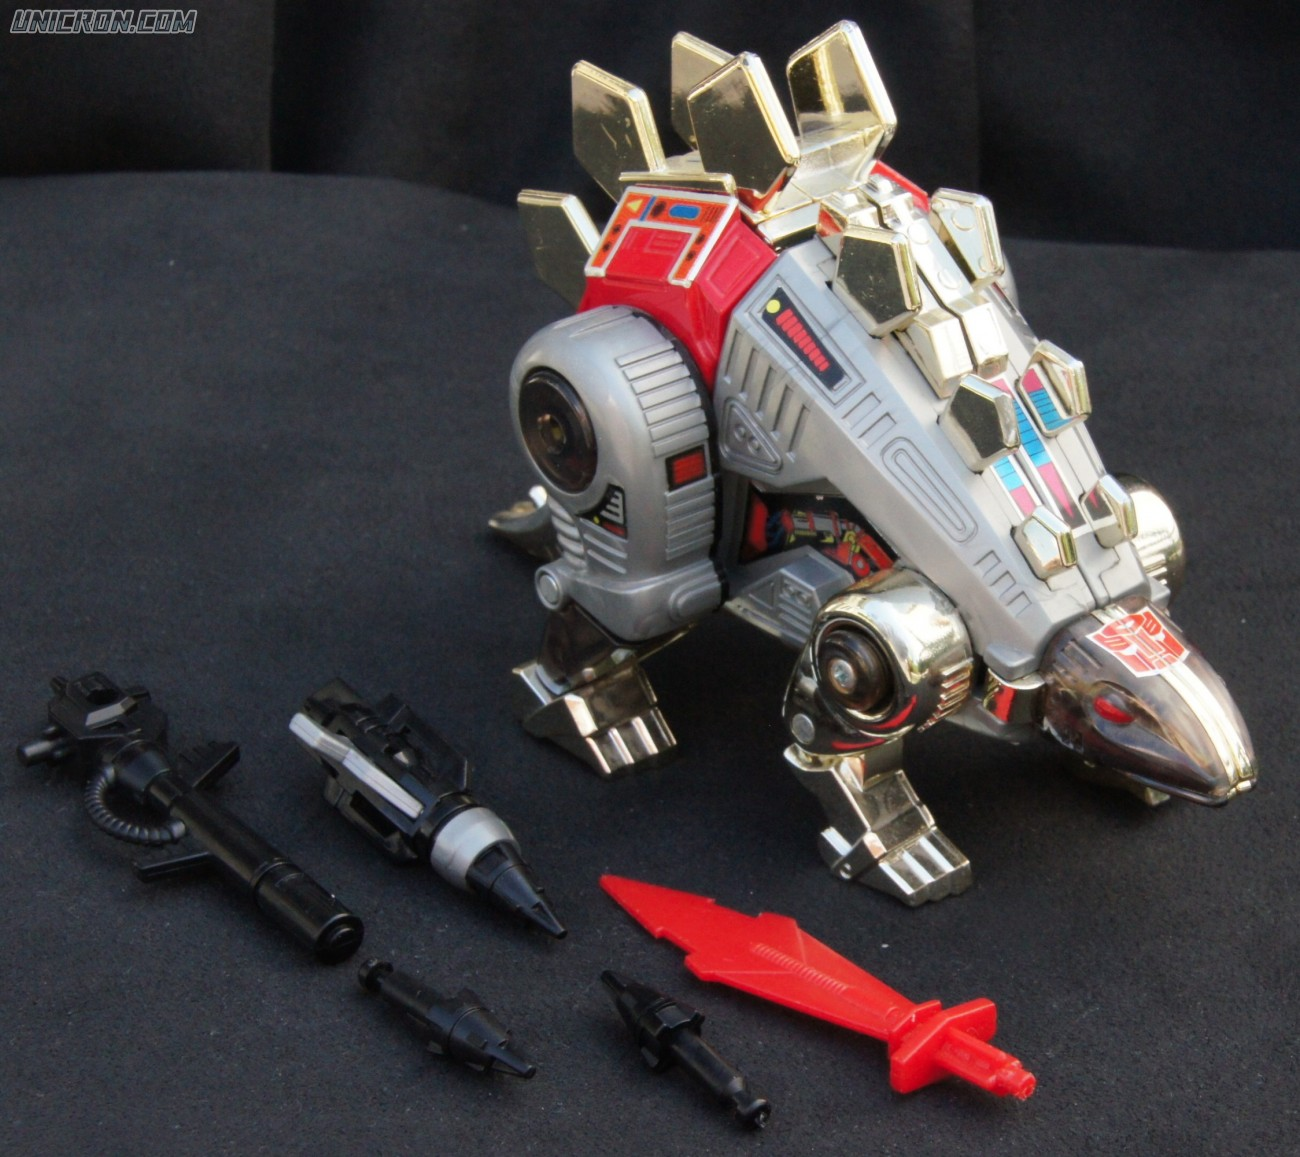 Transformers Generation 1 Snarl toy